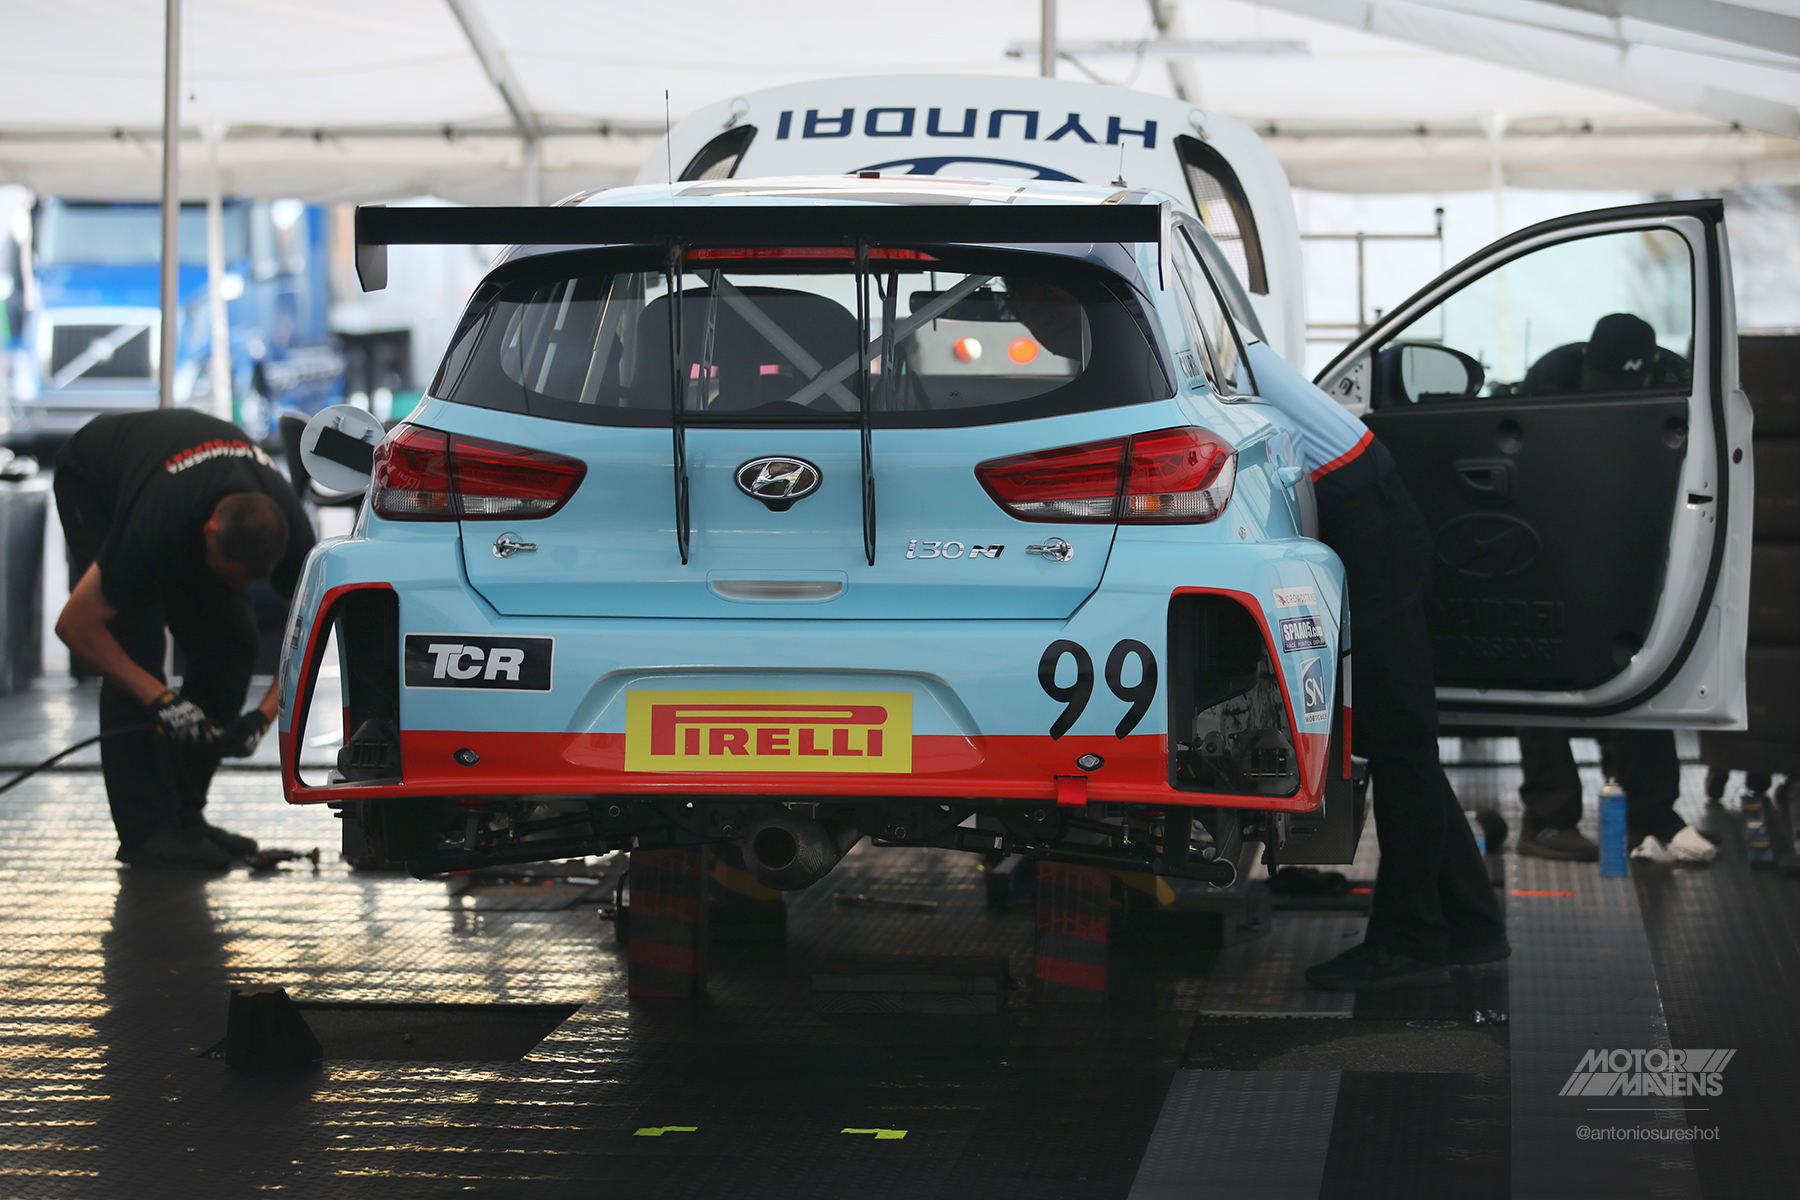 TCR, Hyundai, i30N, i30, Elantra GT, Pirelli World Challenge, Virginia International Raceway, VIR